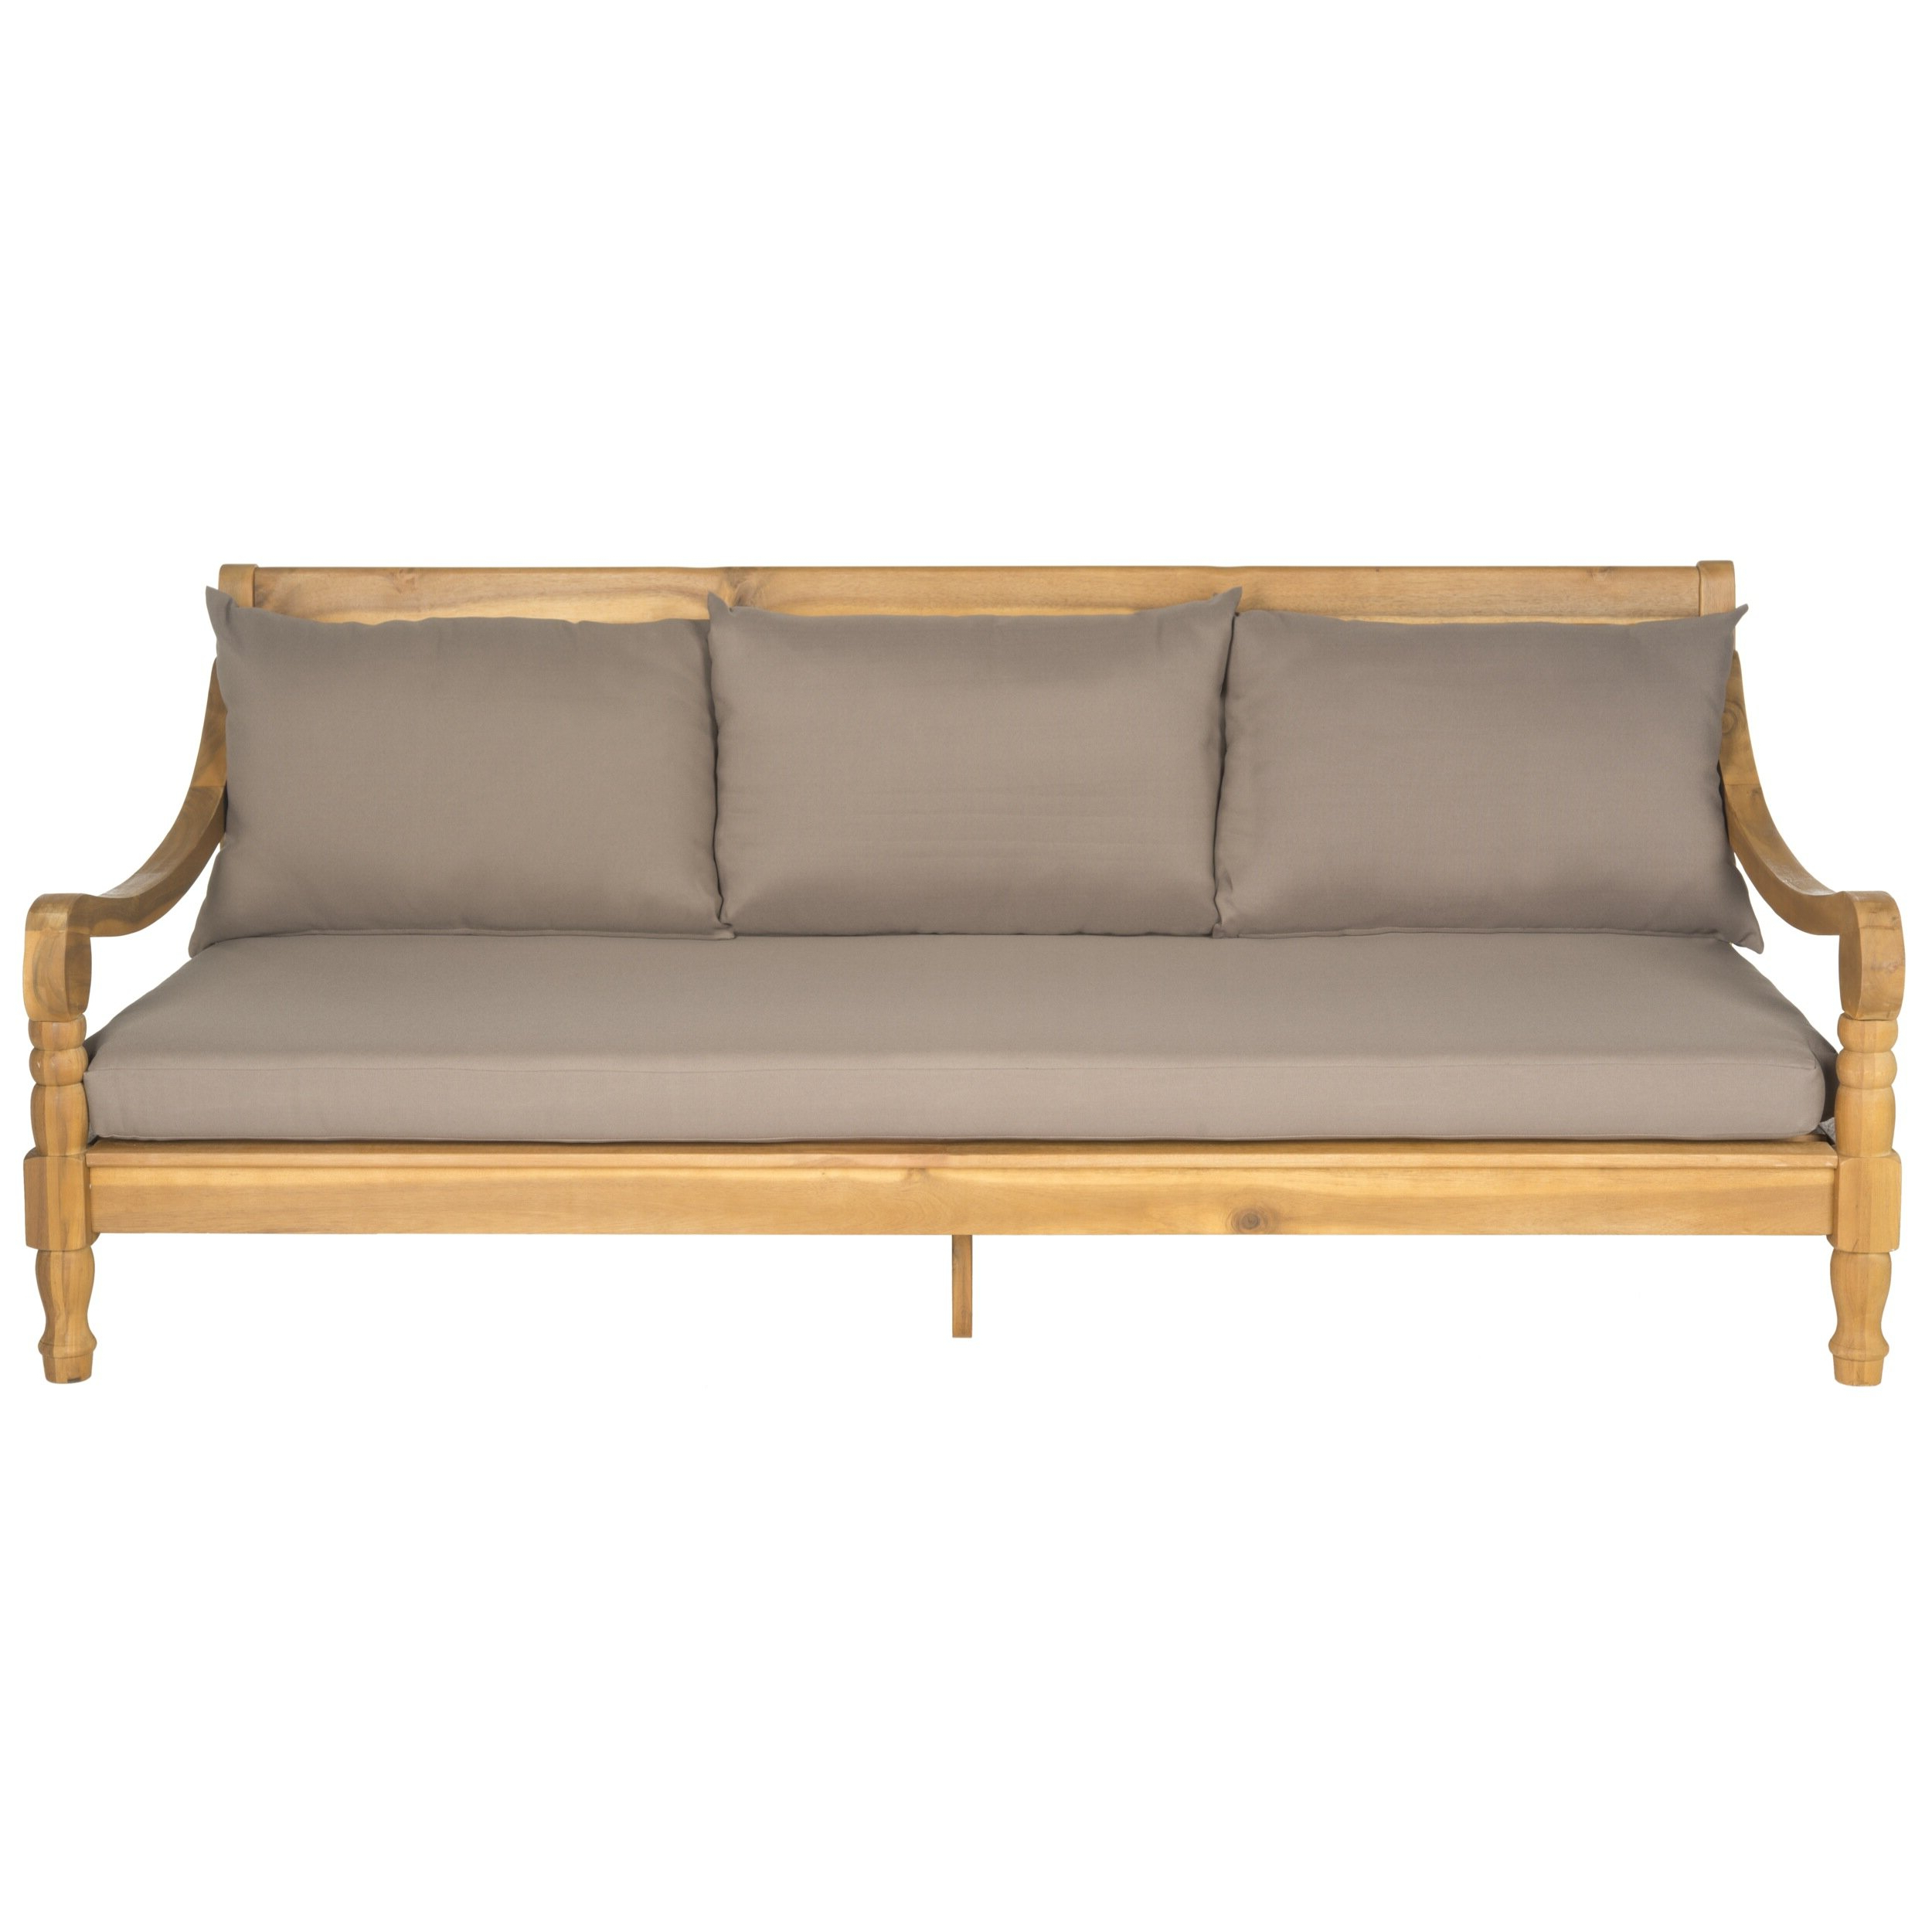 Popular Bodine Patio Daybeds With Cushions In Roush Teak Patio Daybed With Cushions (View 21 of 25)